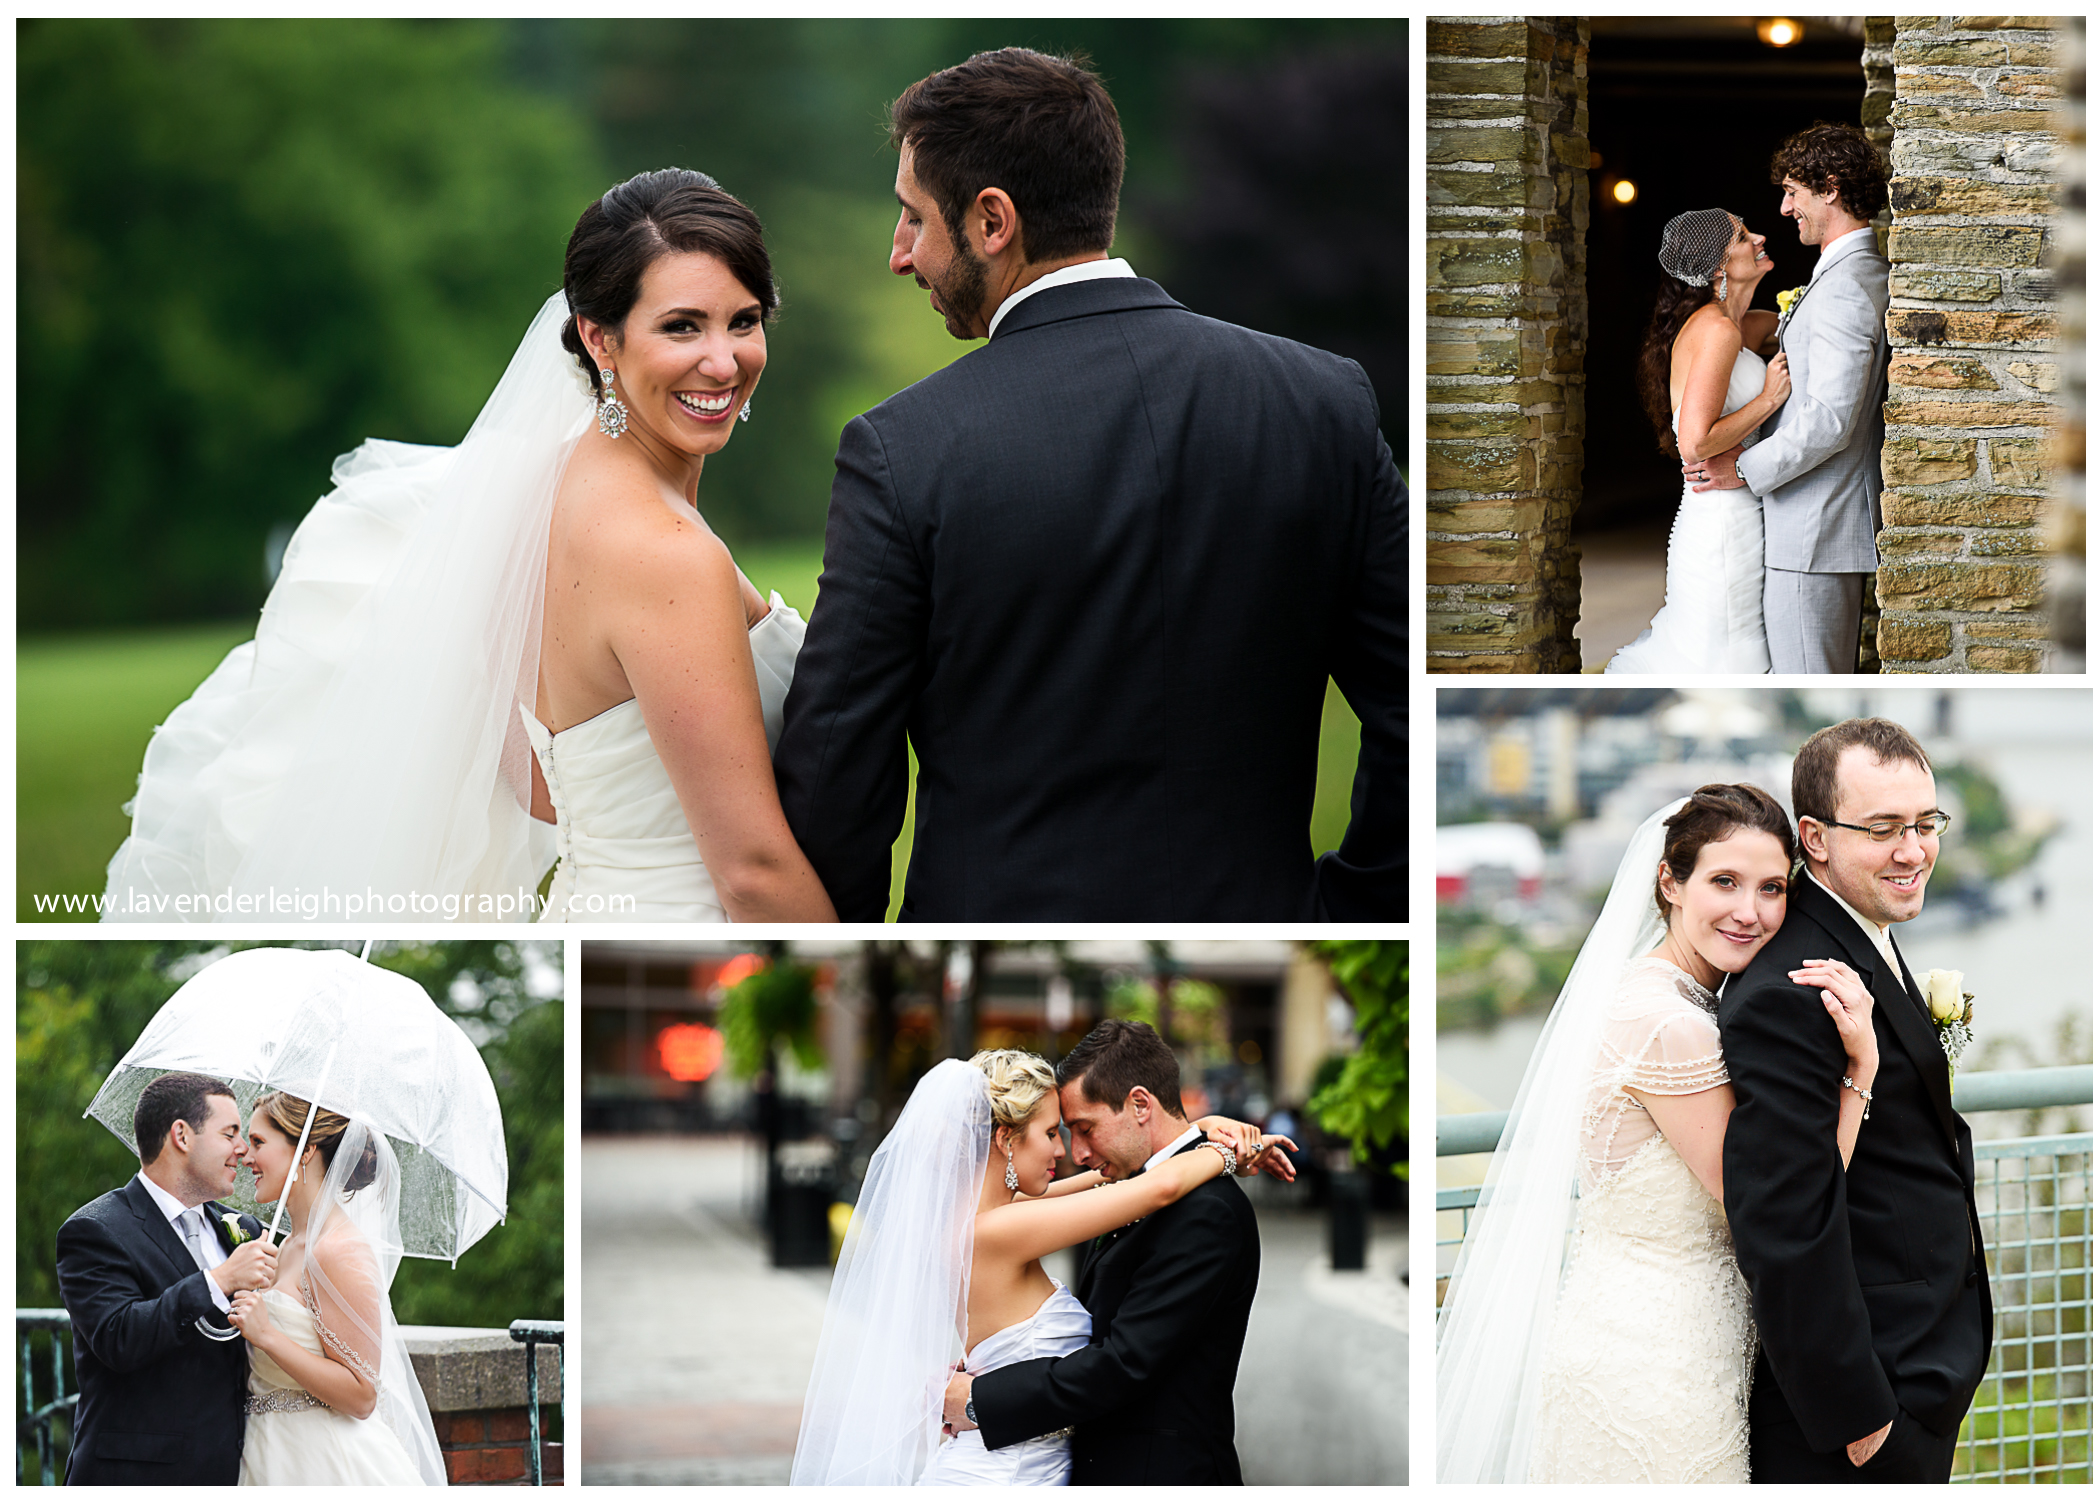 Wedding Photography- Lavender Leigh Photography